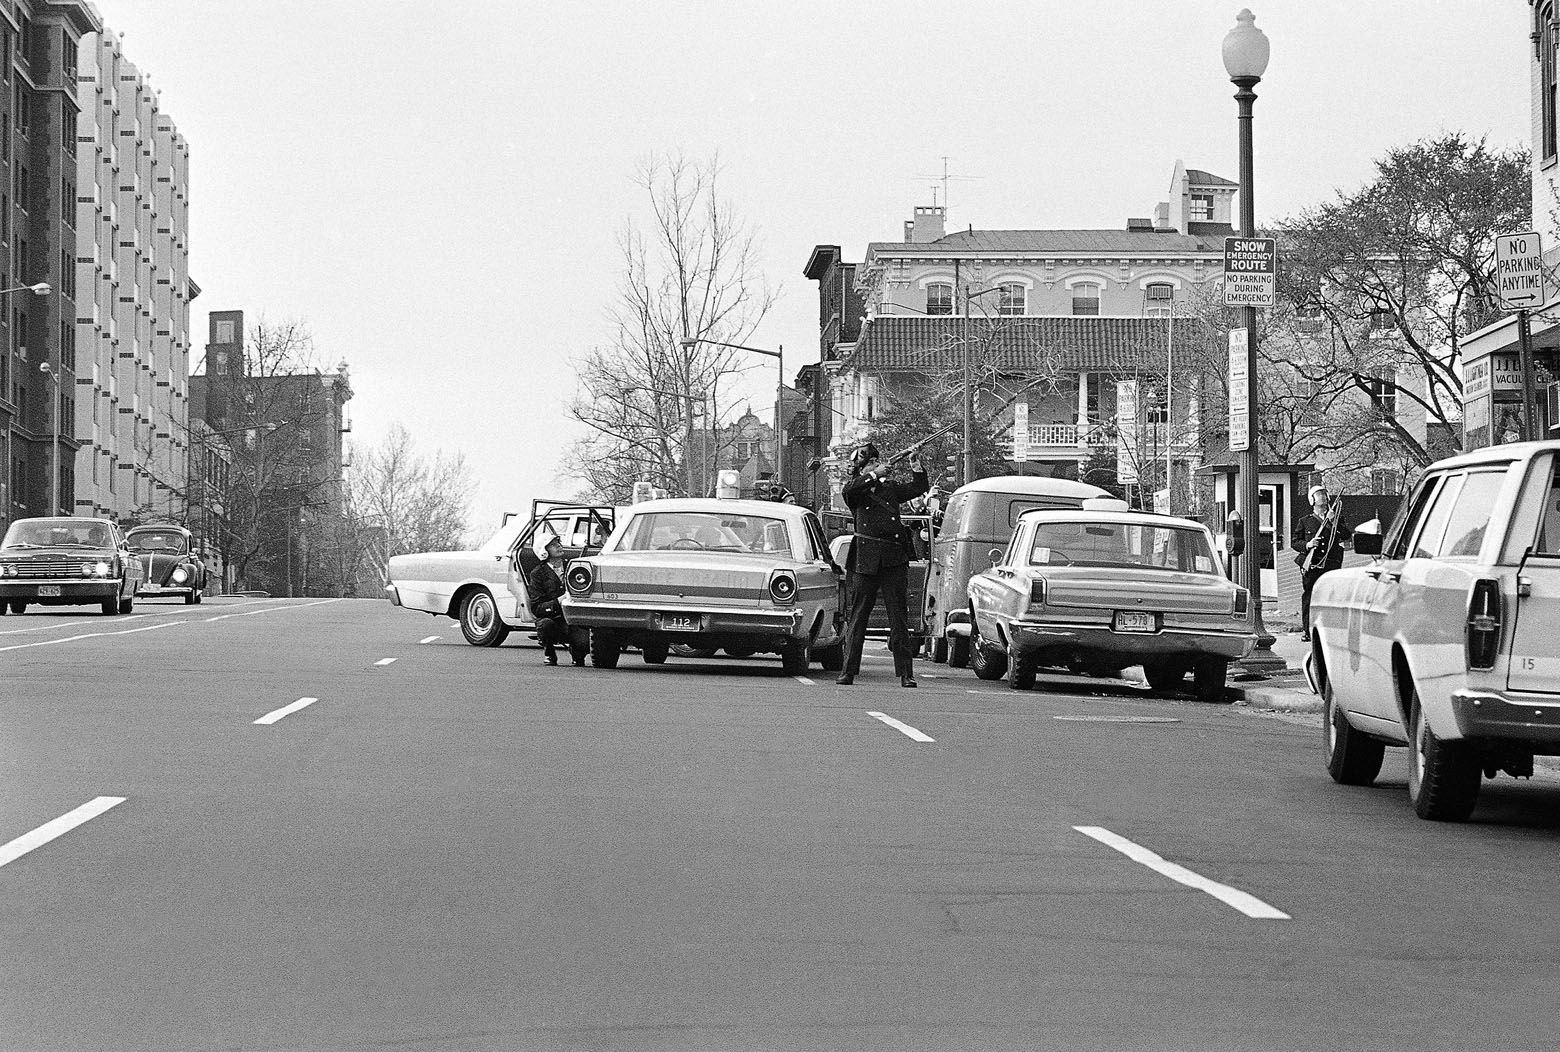 Police keep rifles at the ready as fellow law enforcement officers searched a house for an armed man at 11th and K Streets NW., April 7, 1968. Police were summoned after they received reported that a man, armed with a .22-caliber pistol, ran into the house. He was taken into custody without any shots being fired. (AP Photo/Charles Harrity)